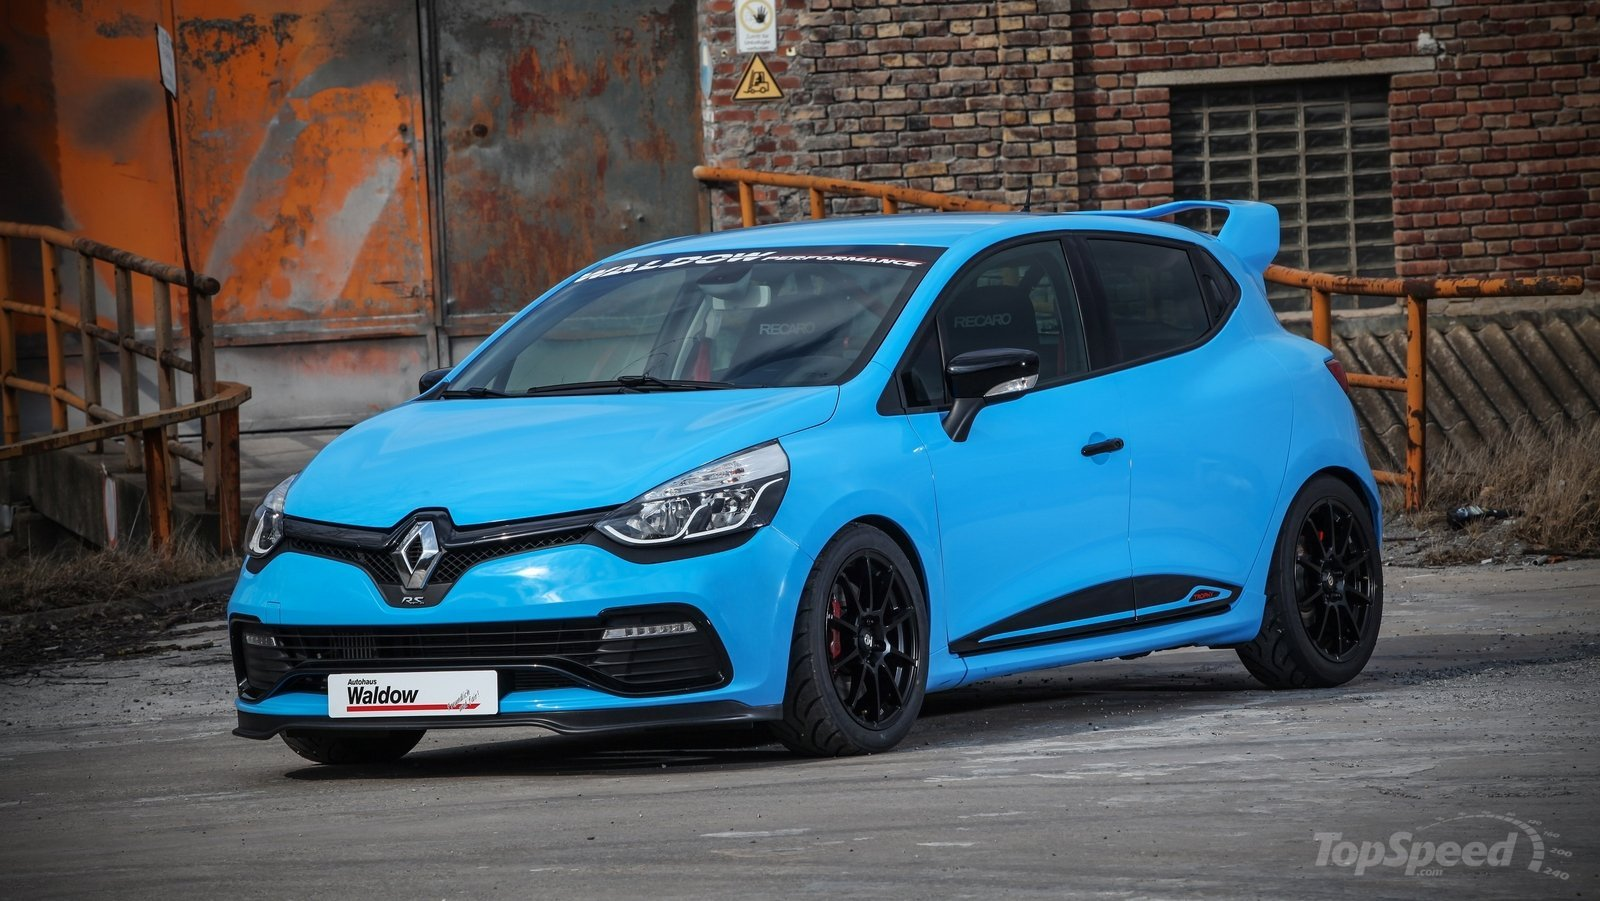 Renault clio 220 trophy edc by waldow performance 1 tuning for Housse auto tuning